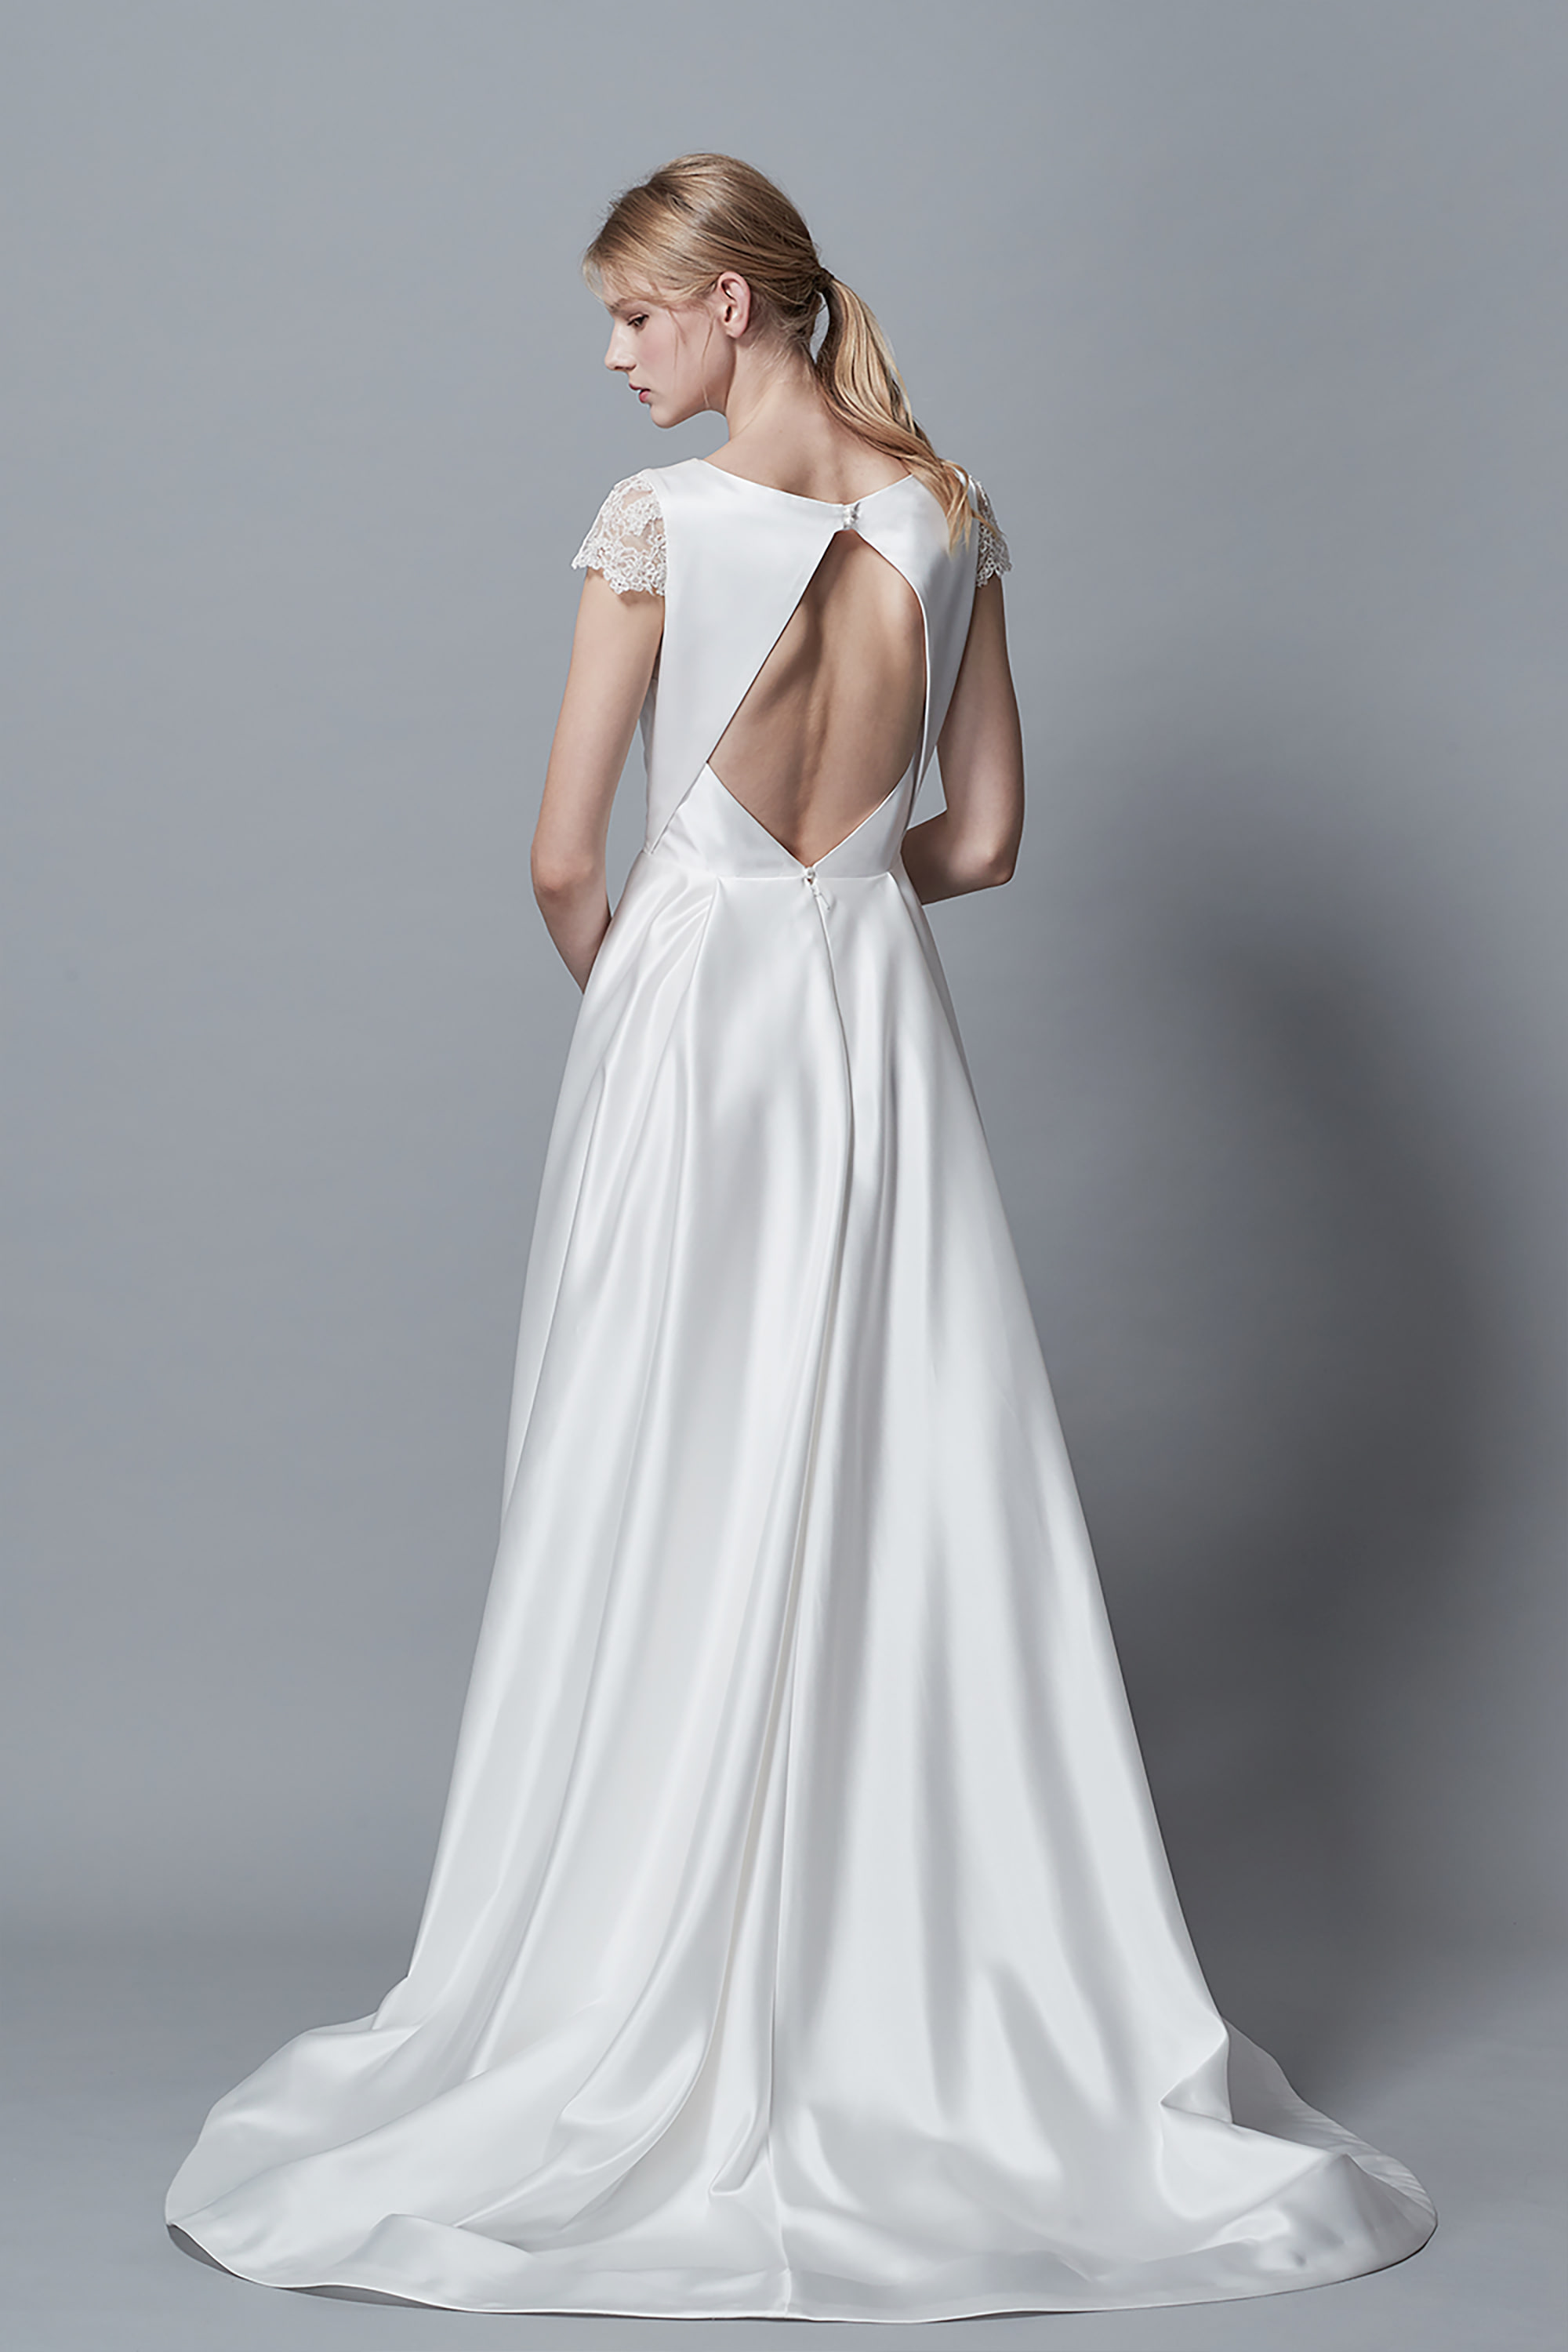 Ciel Blanc, A LINE WEDDING DRESS, SATIN WEDDING DRESS, CAP SLEEVE DRESS